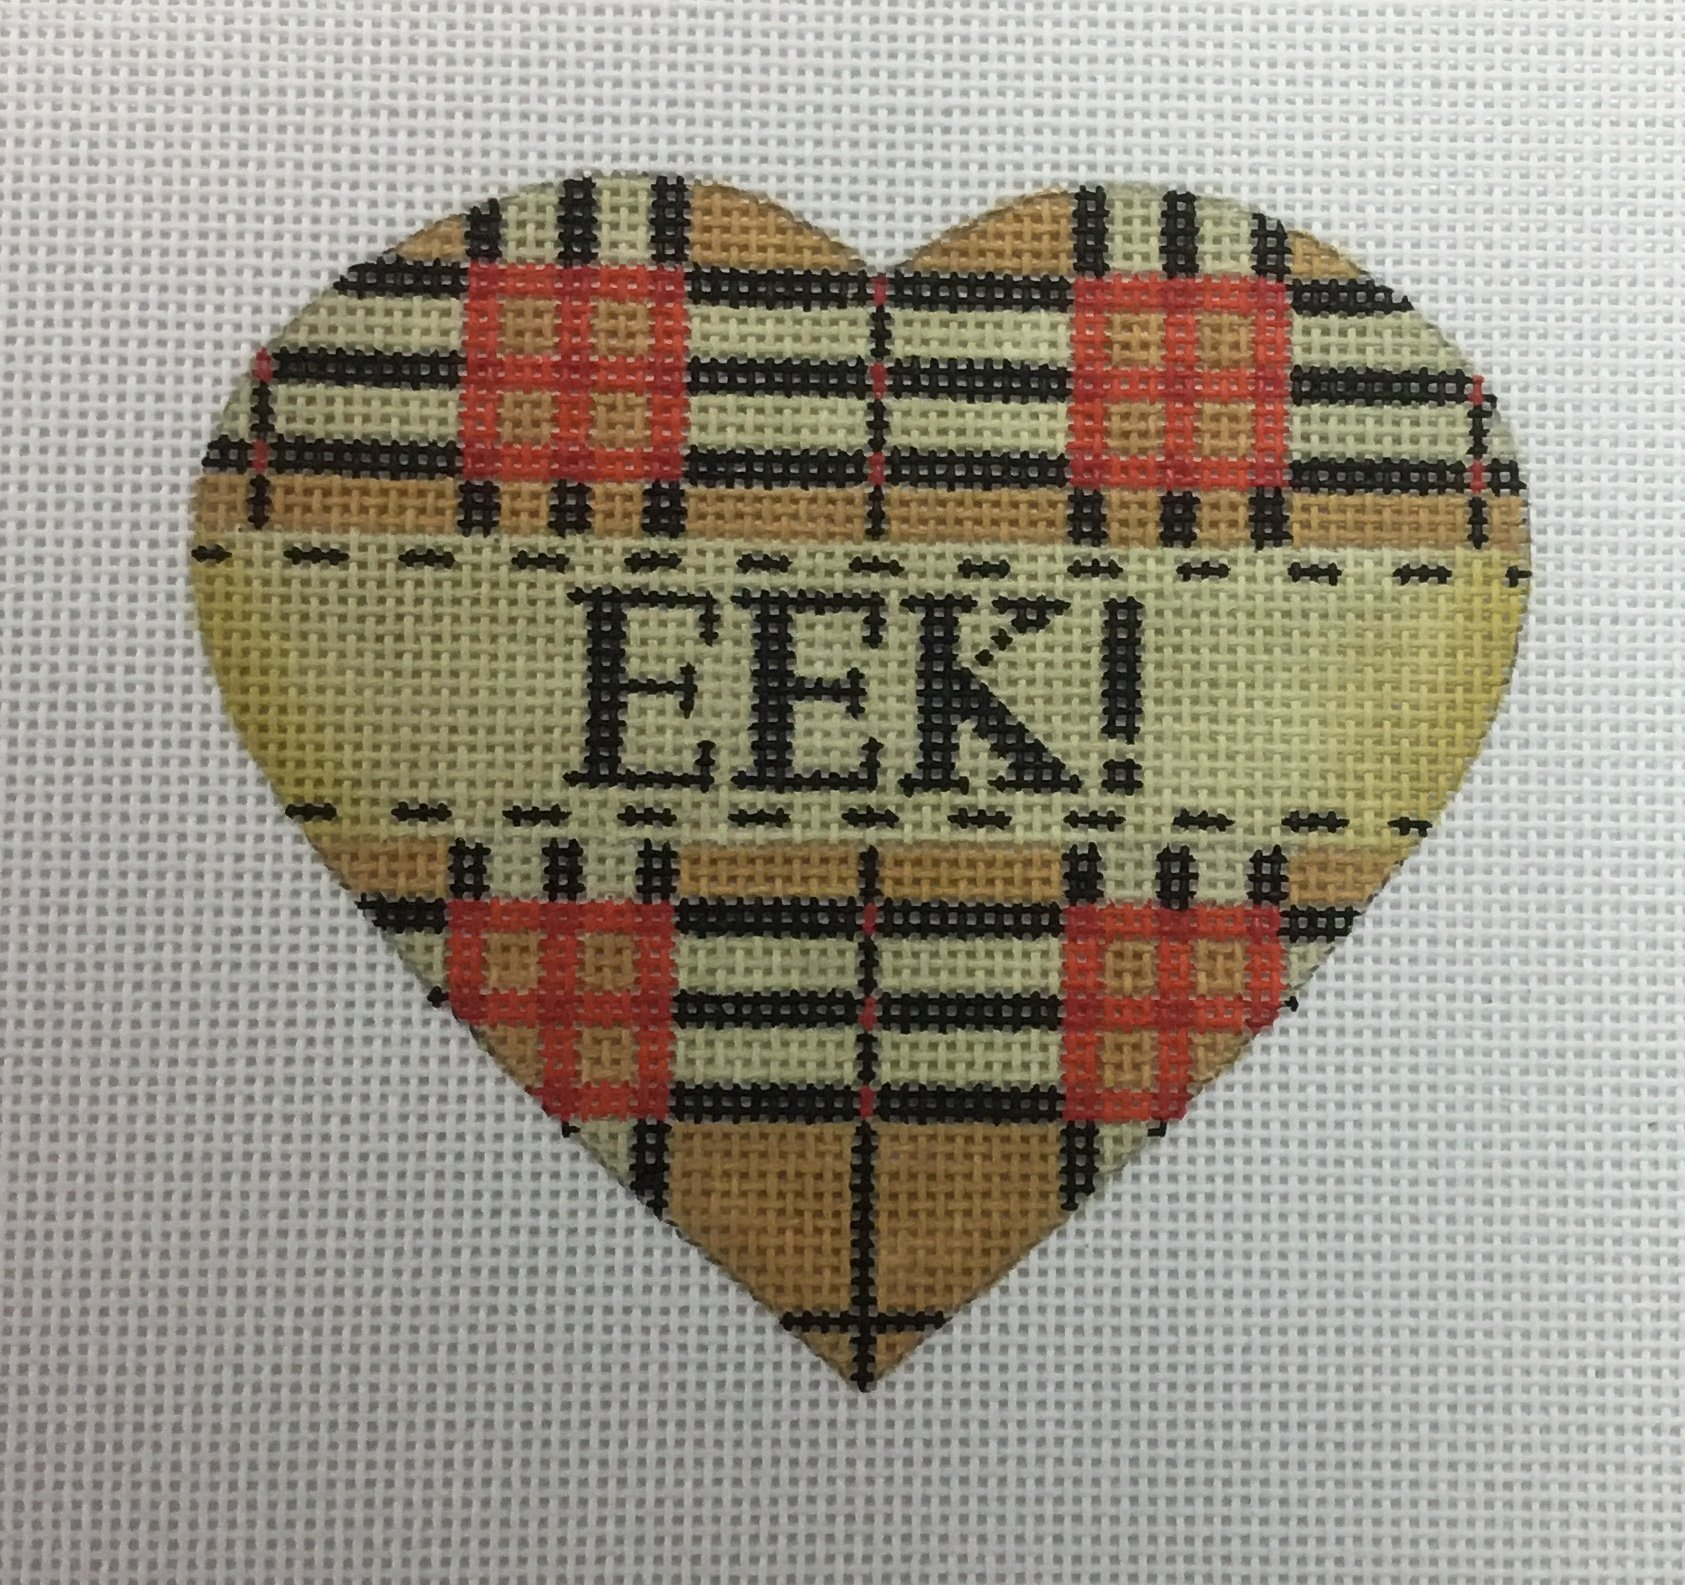 EEK Heart,18 ct., 4x4